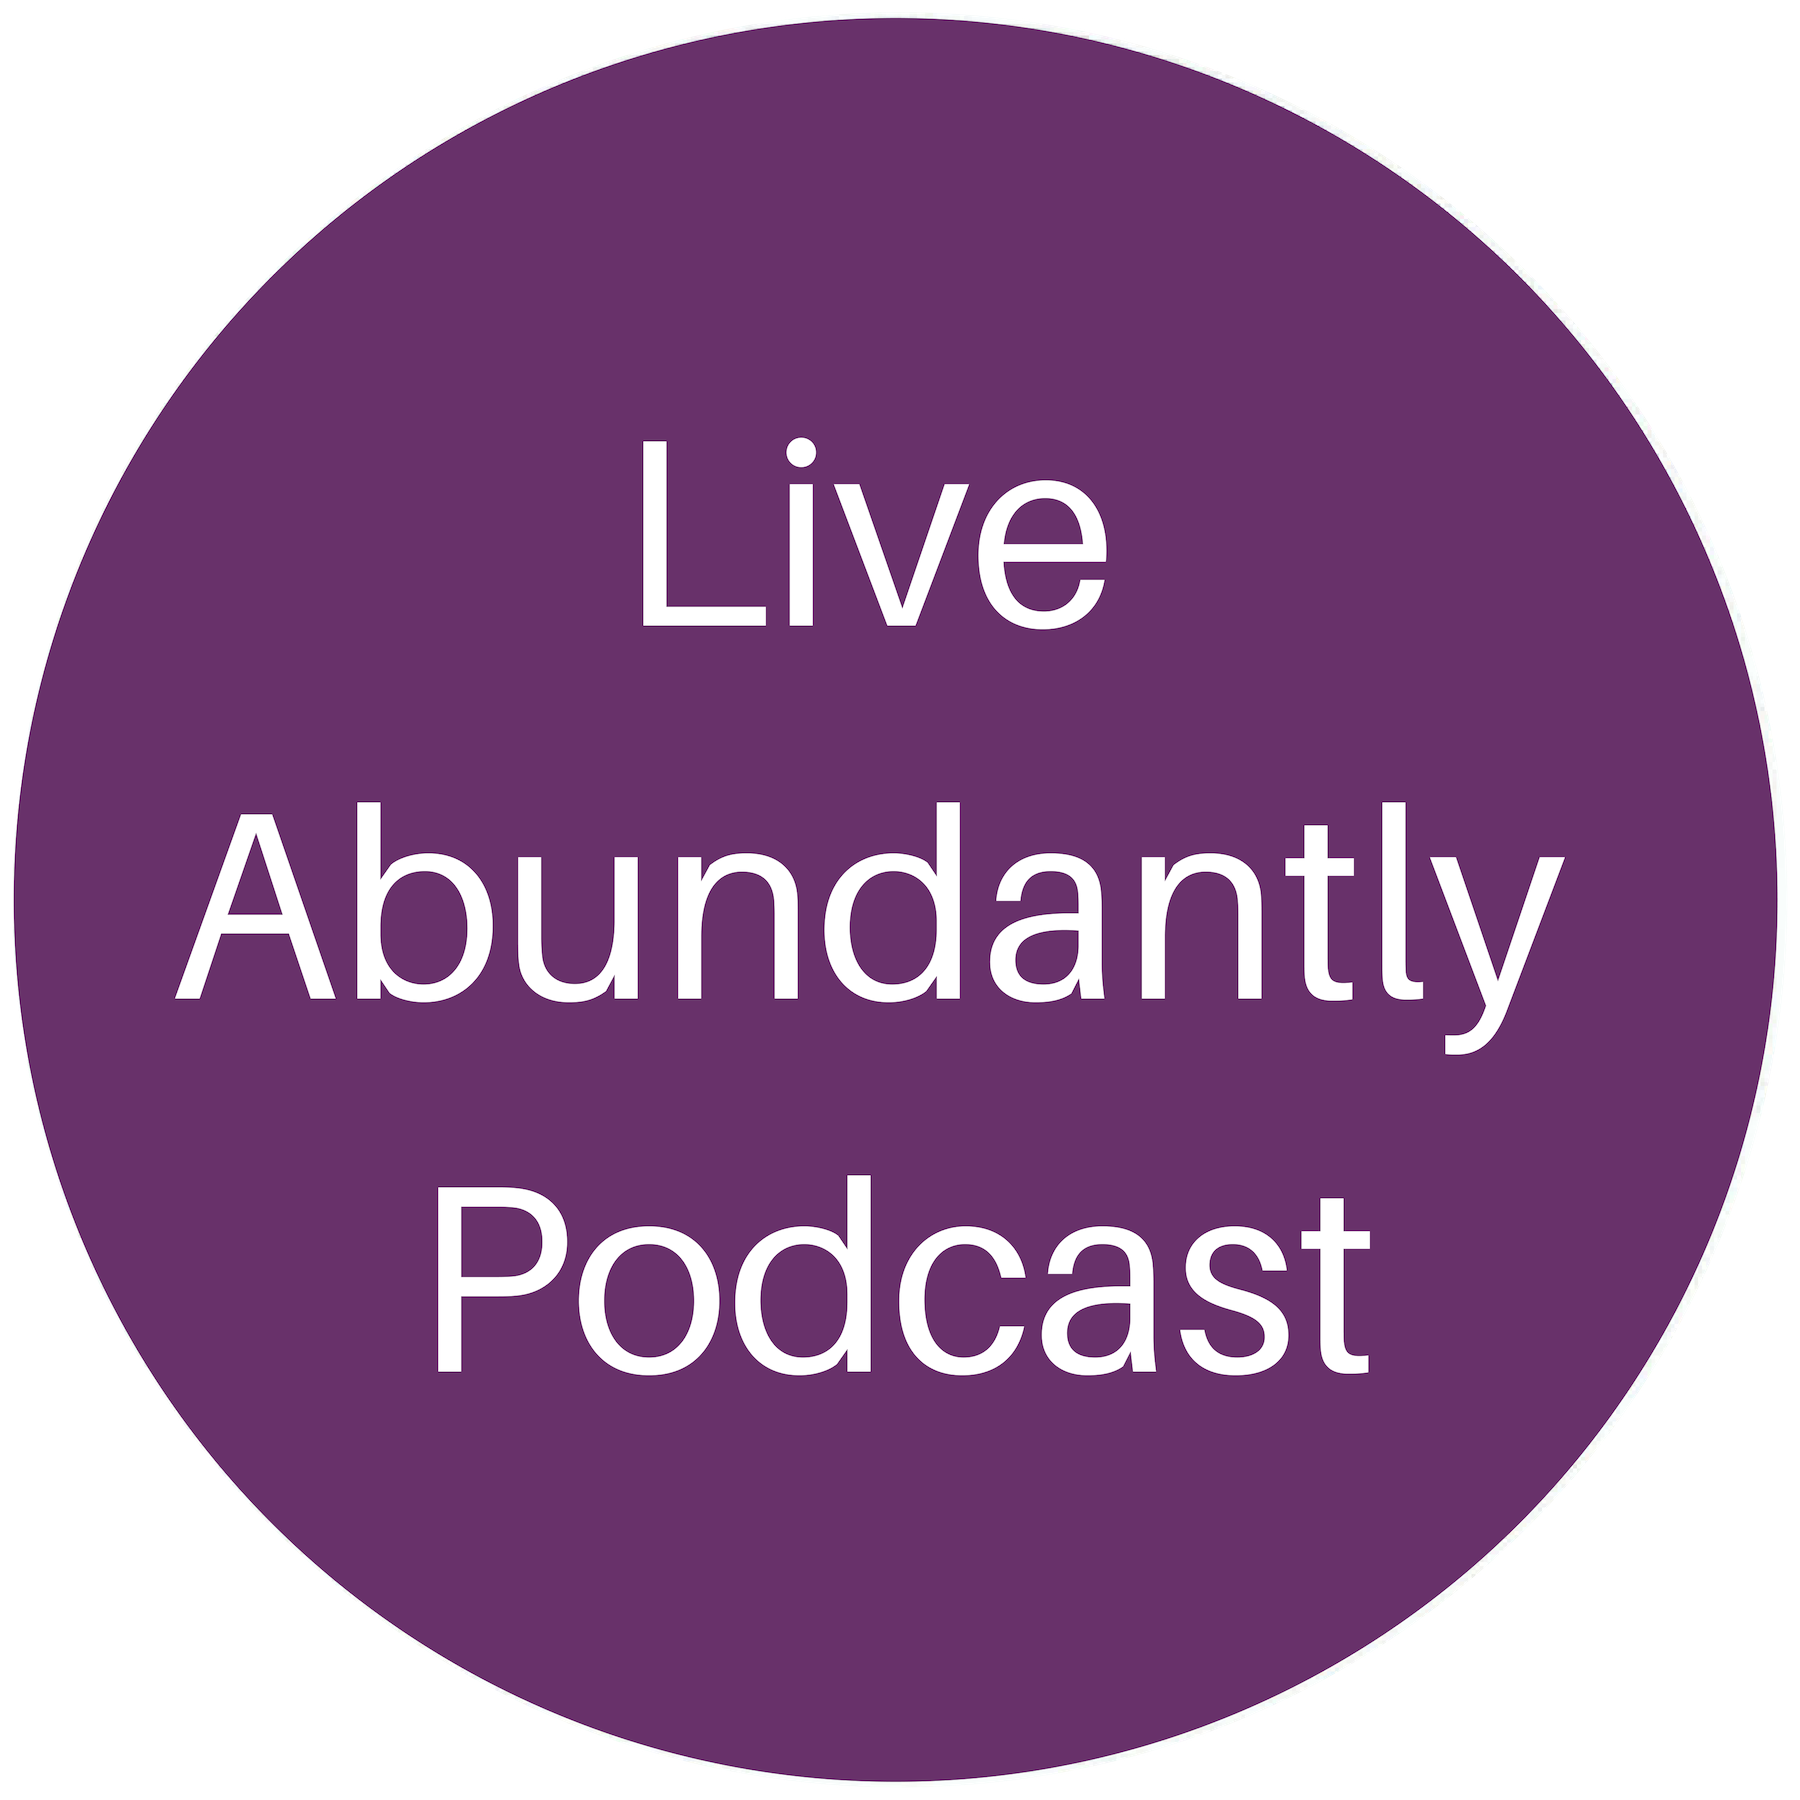 Live Abundantly Podcast.png